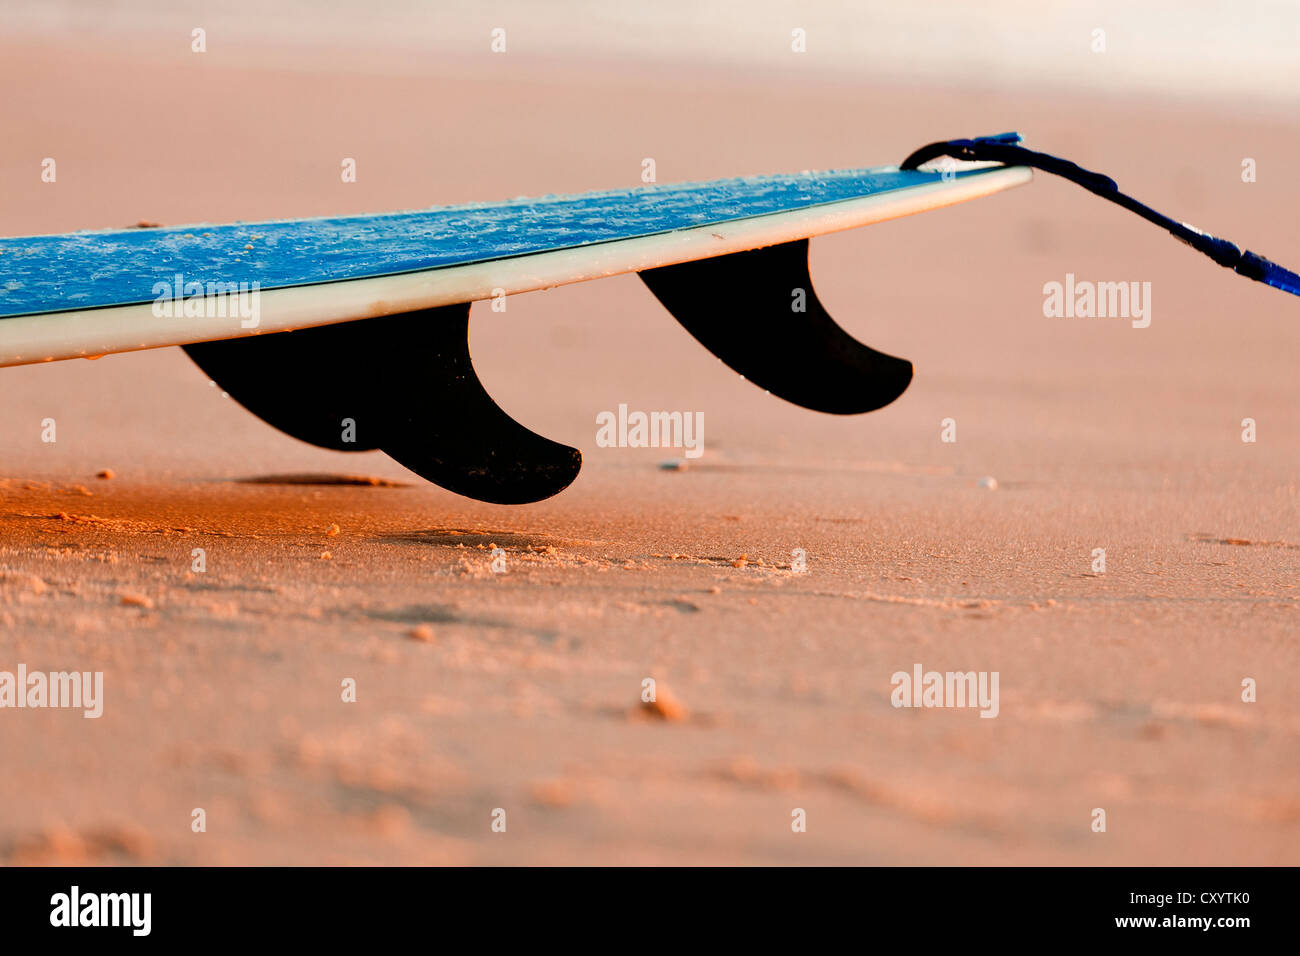 Tail of a surfboard on the sand with three fins - Stock Image